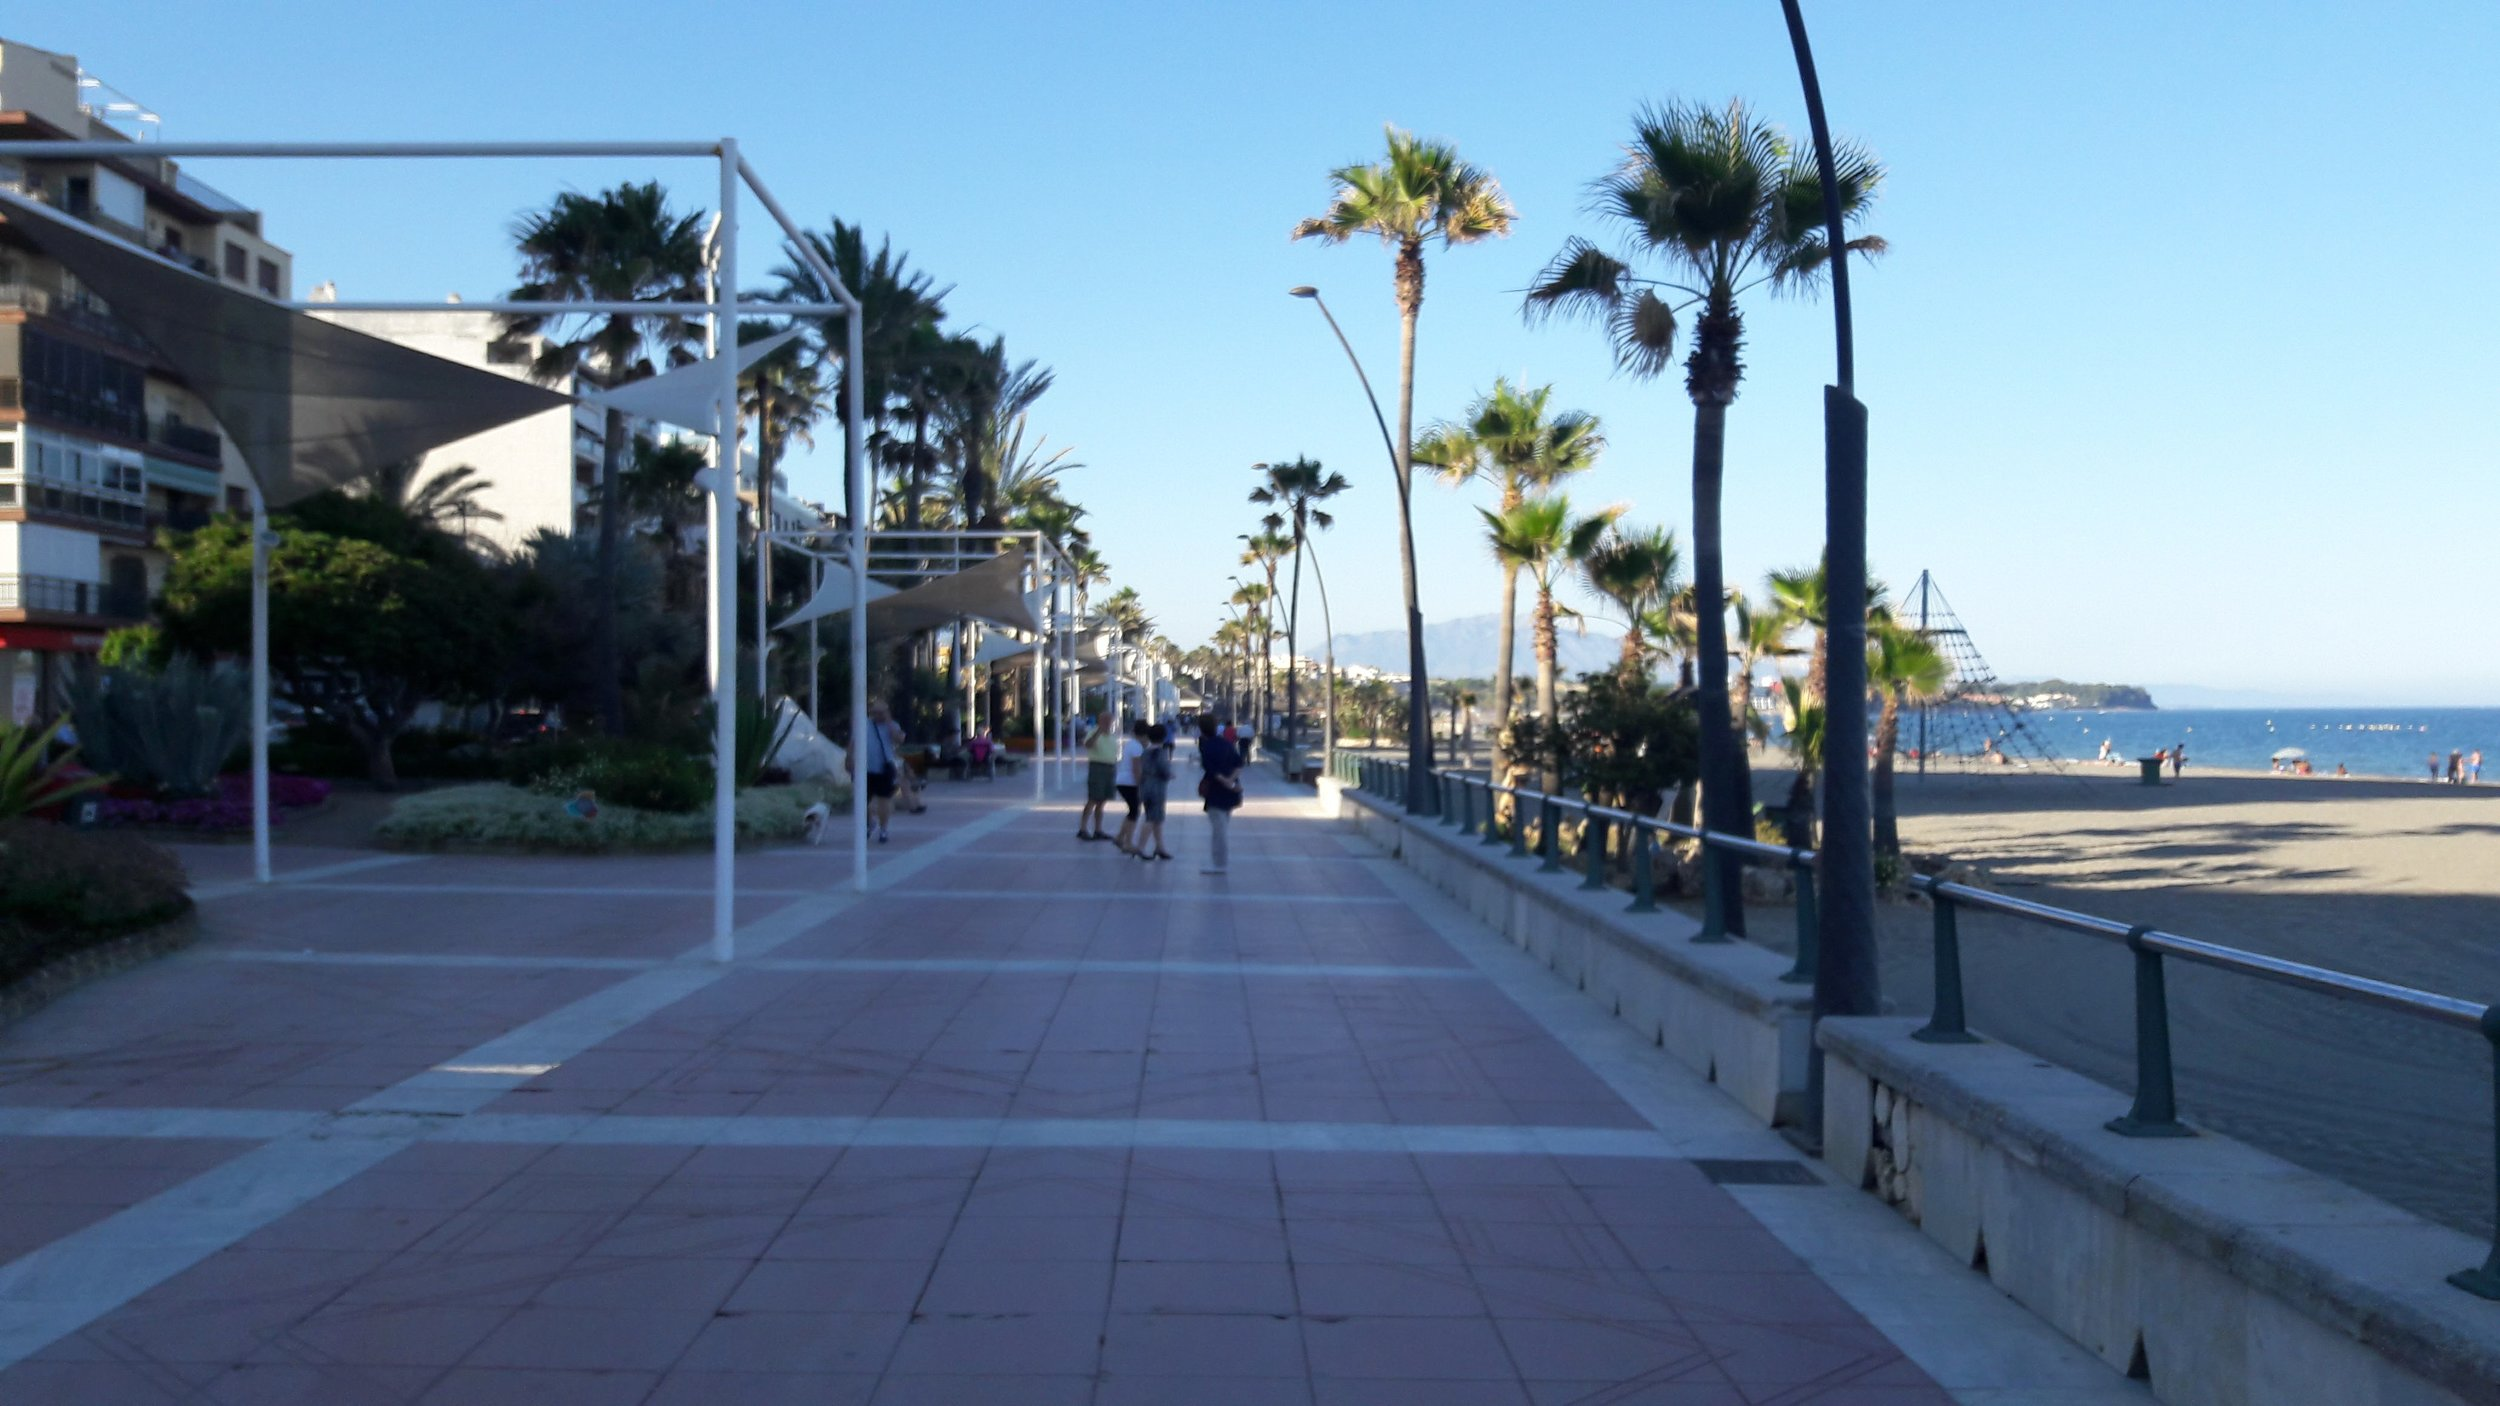 Estepona - Everywhere you look, you'll see flowers and lush gardens along the boardwalk and nautical blue and white styled homes.